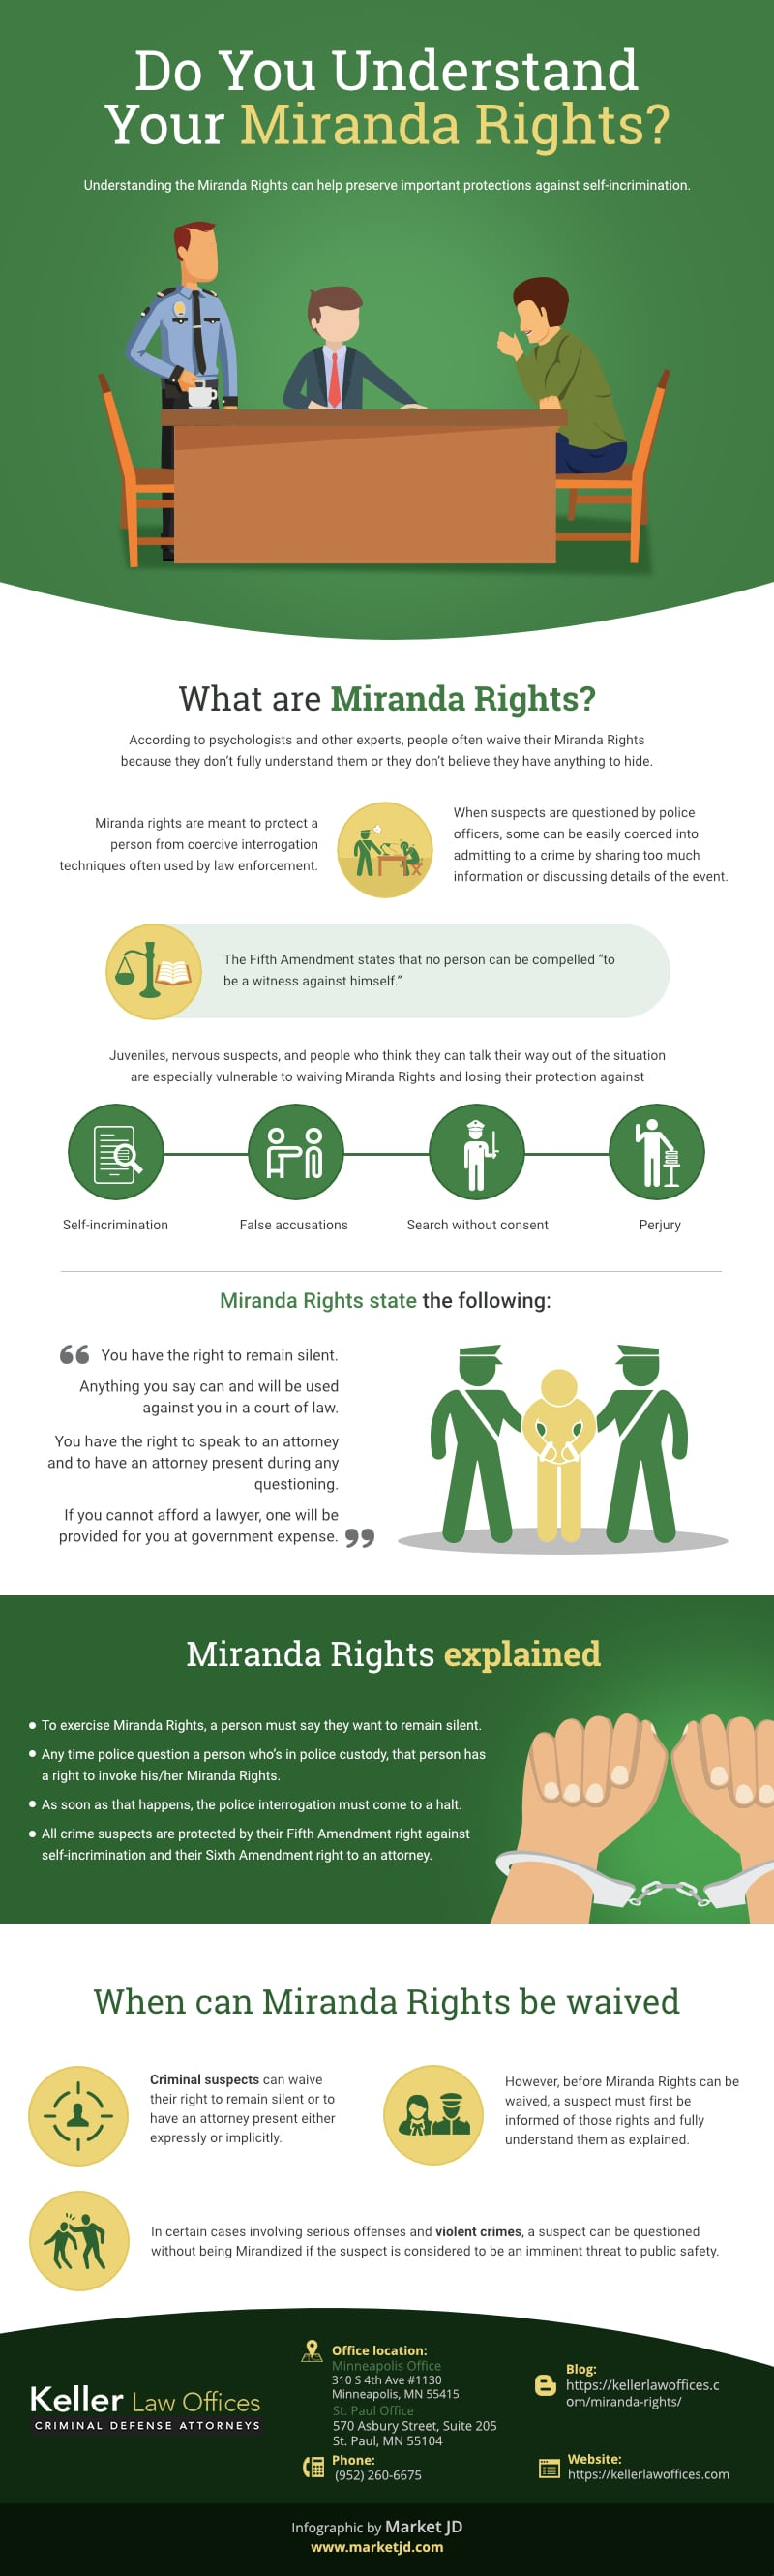 Do You Understand Your Miranda Rights (1)